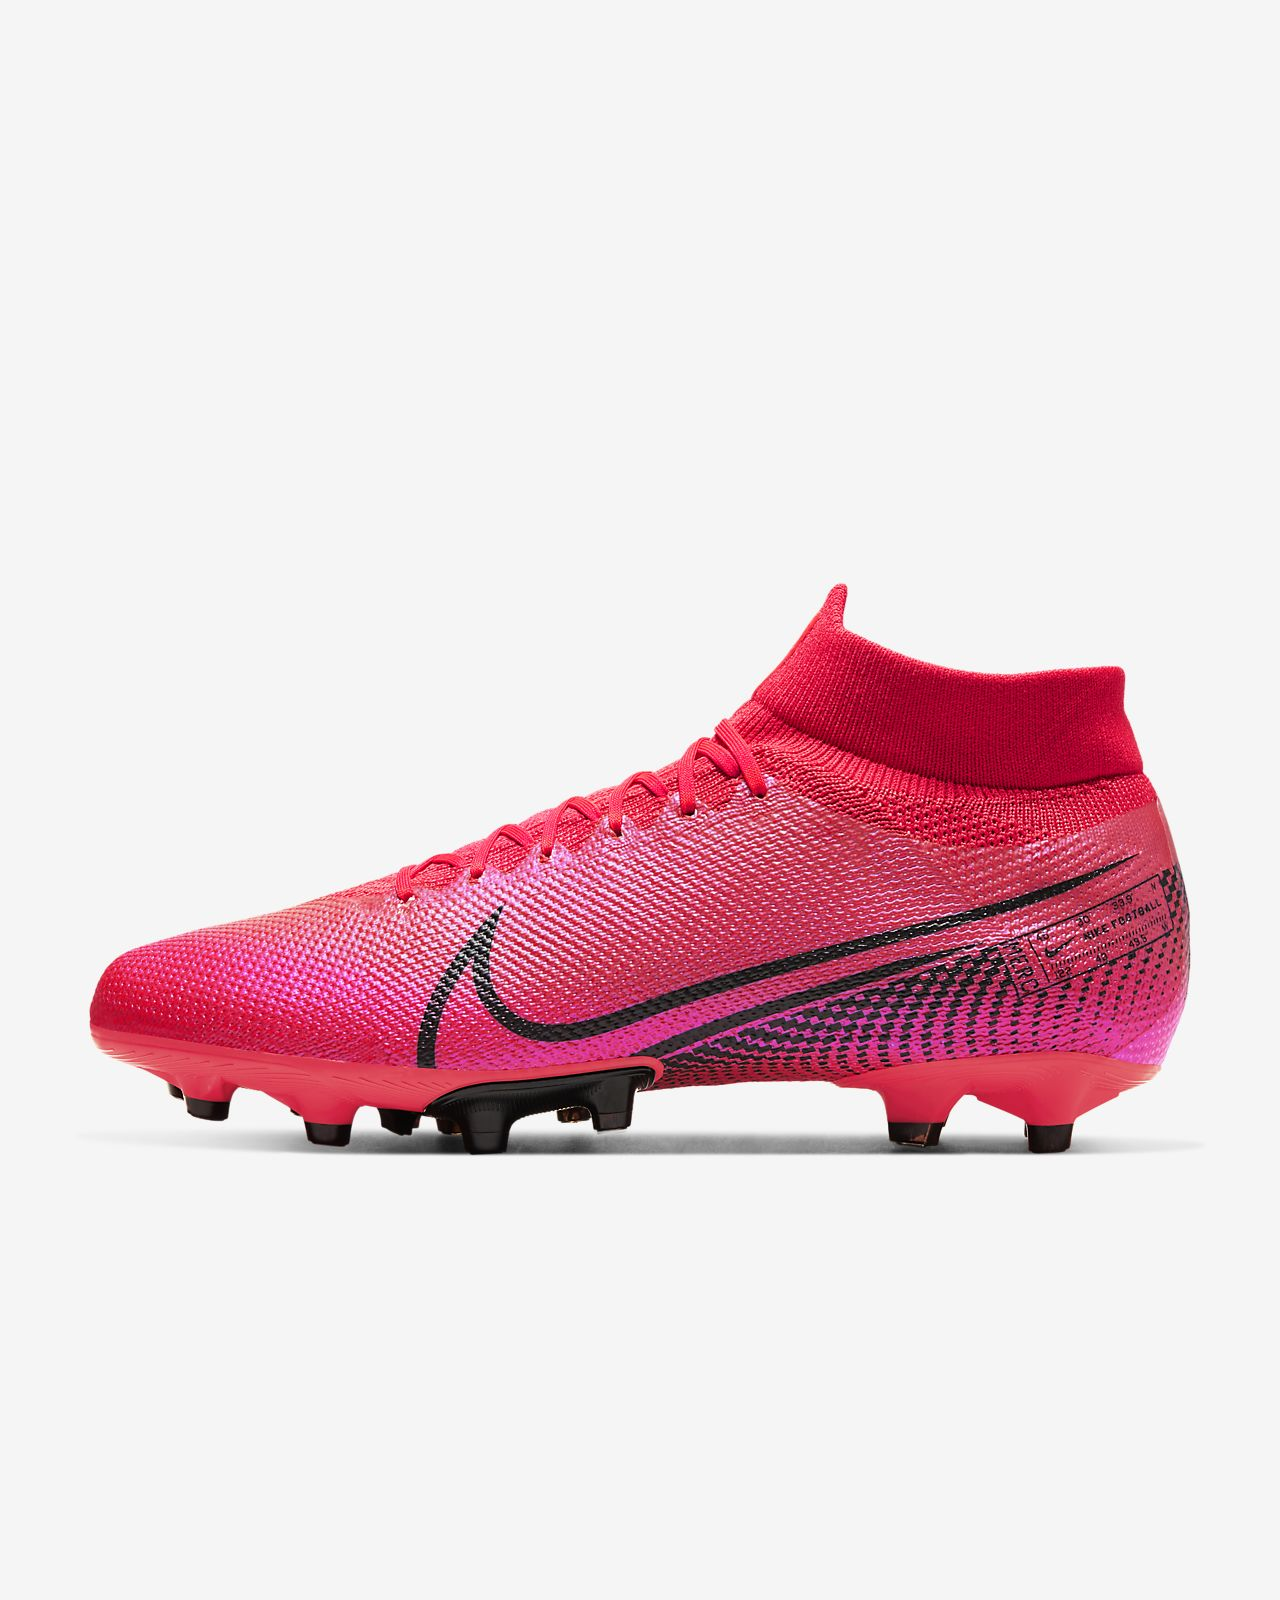 Nike Mercurial Superfly 7 Pro AG-PRO